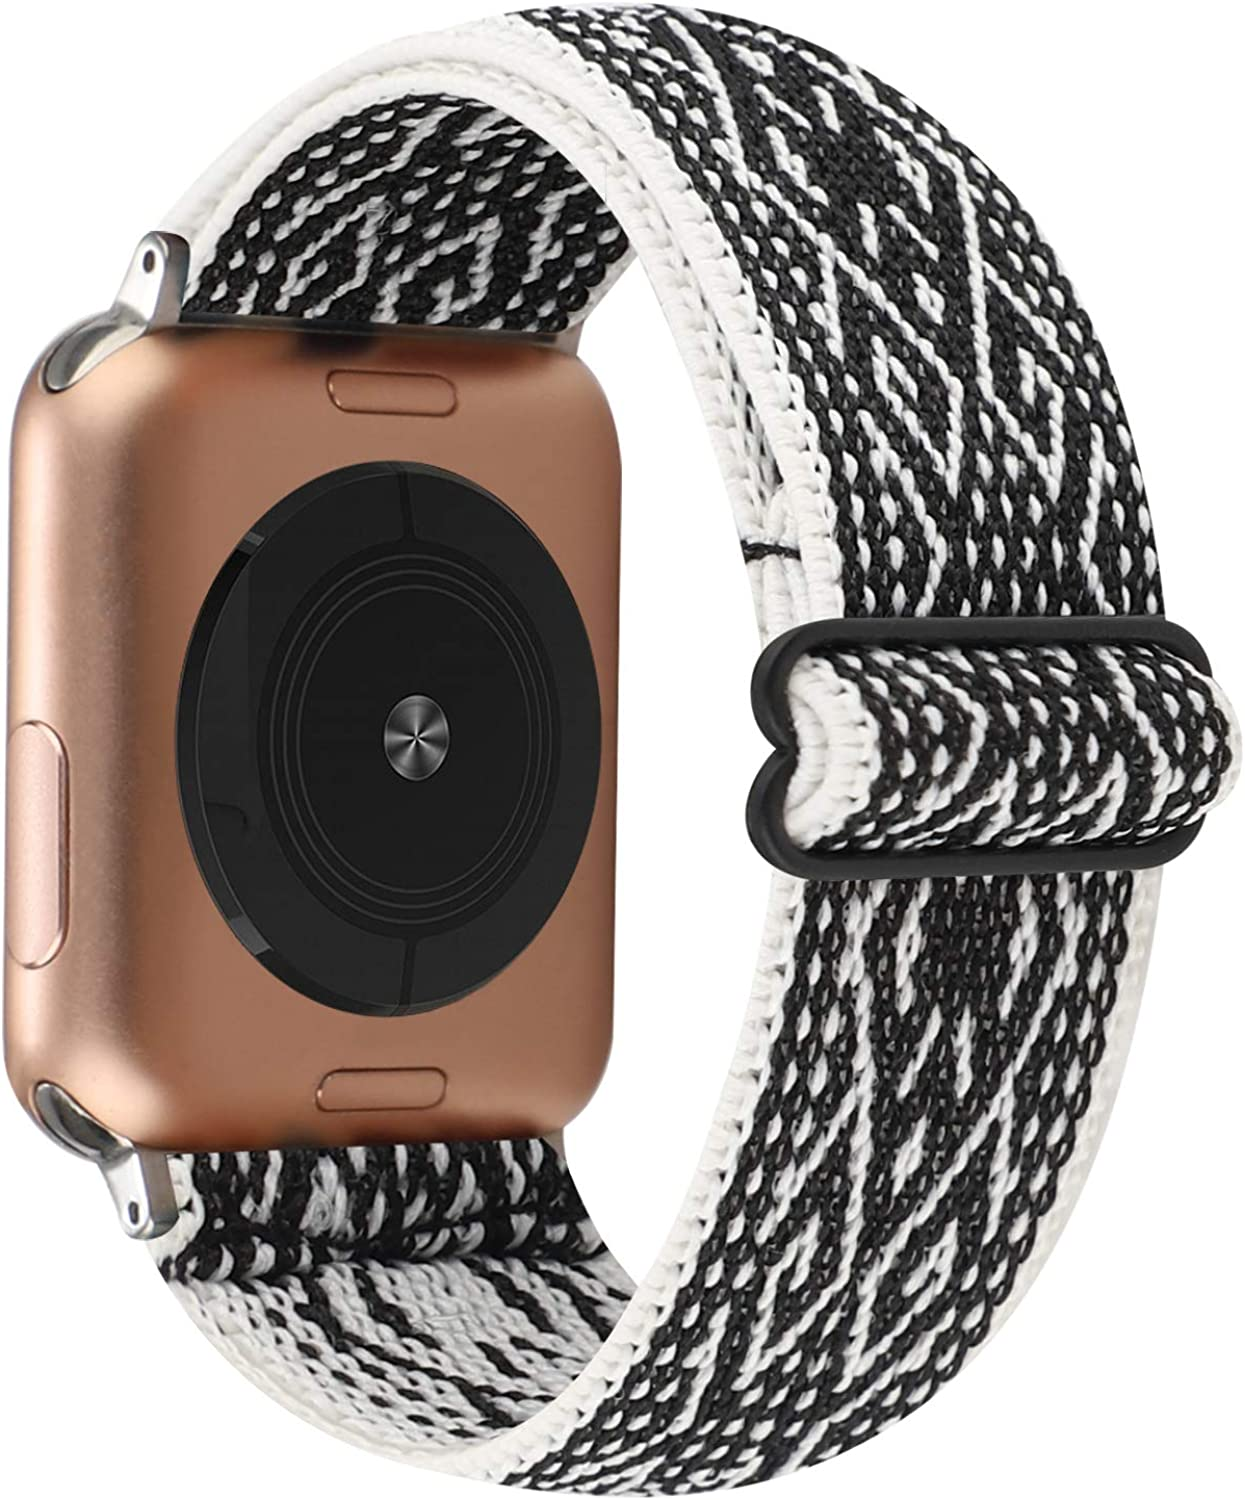 Adjustable Elastic Watch Band Compatible with Apple Watch 38mm 40mm, Nylon Stretchy Solo Loop Bracelet Women Replacement for iWatch Series 6/5/4/3/2/1